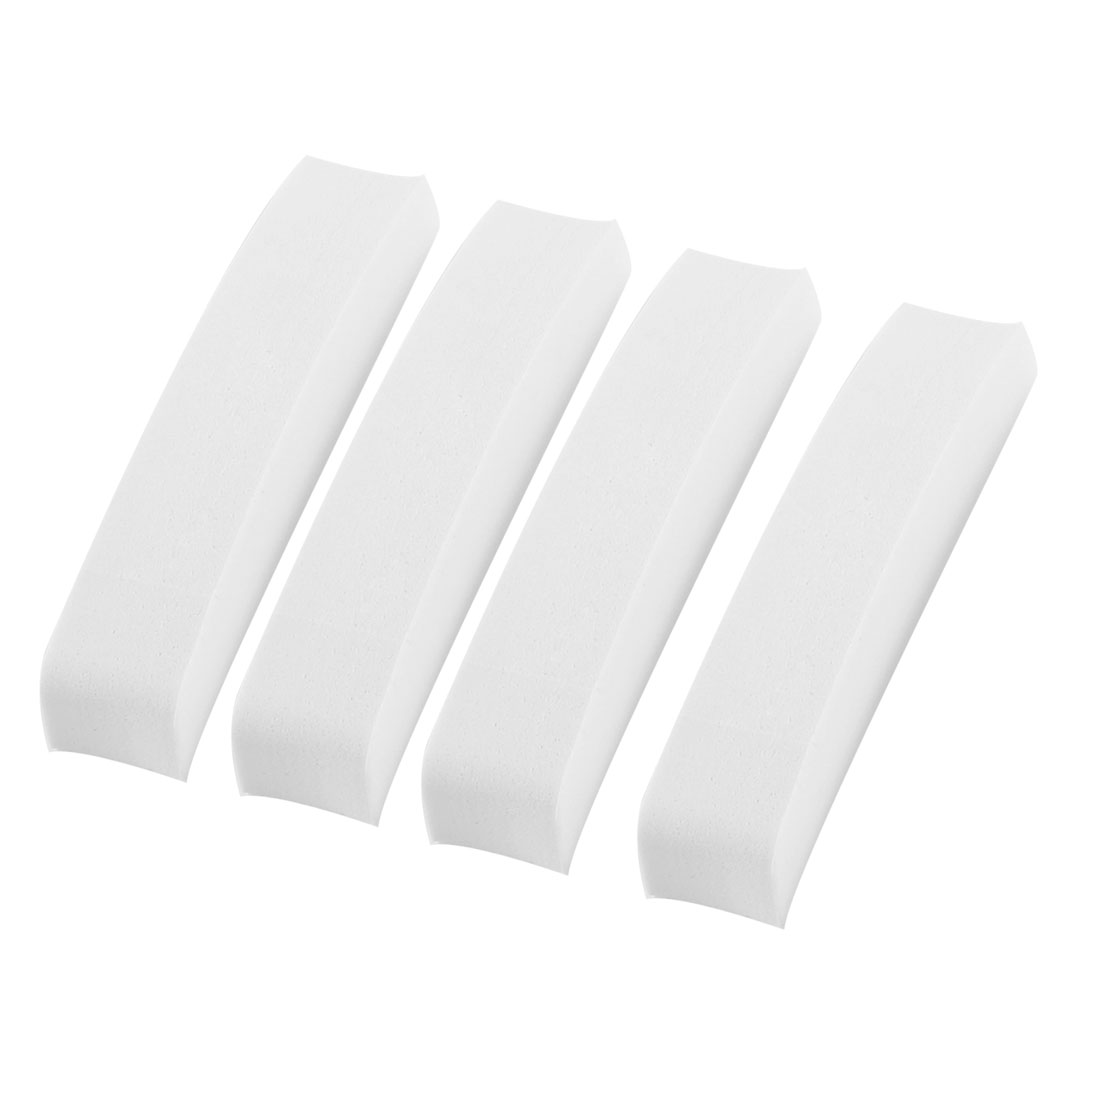 Cars White Self Adhesive Rectangle Foam Door Guard Protector Stickers 4 Pcs